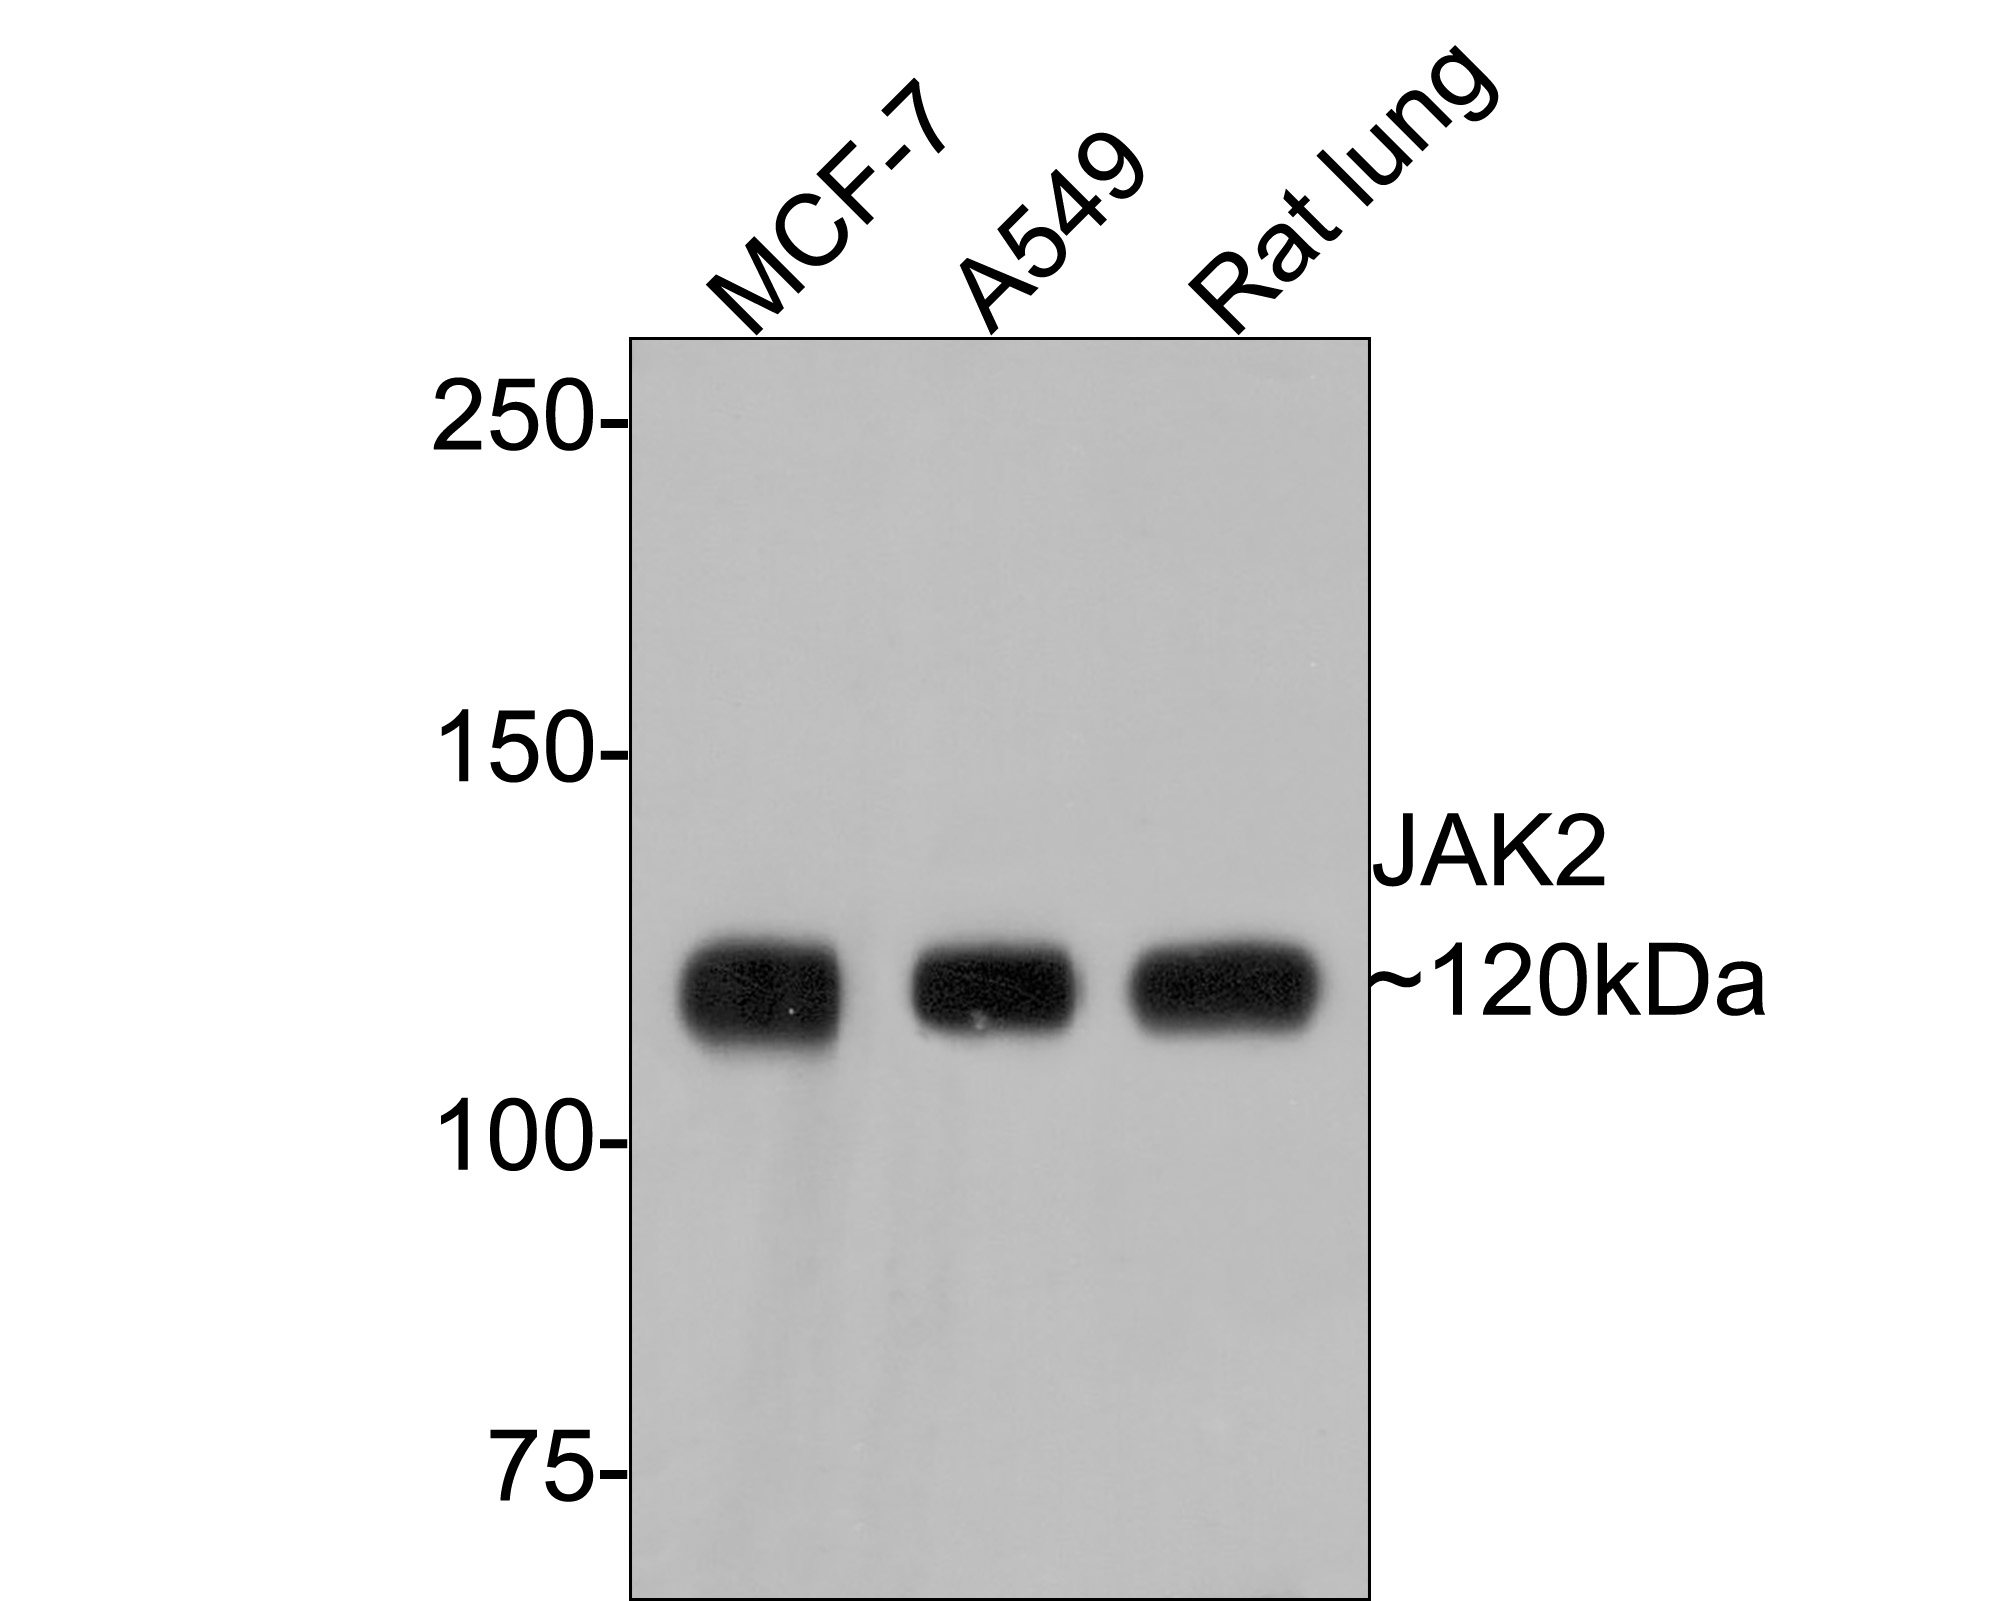 Western blot analysis of JAK2 on different lysates. Proteins were transferred to a PVDF membrane and blocked with 5% BSA in PBS for 1 hour at room temperature. The primary antibody (ET1607-35, 1/500) was used in 5% BSA at room temperature for 2 hours. Goat Anti-Rabbit IgG - HRP Secondary Antibody (HA1001) at 1:5,000 dilution was used for 1 hour at room temperature.<br /> Positive control: <br /> Lane 1: A549 cell lysate<br /> Lane 2: MCF-7 cell lysate